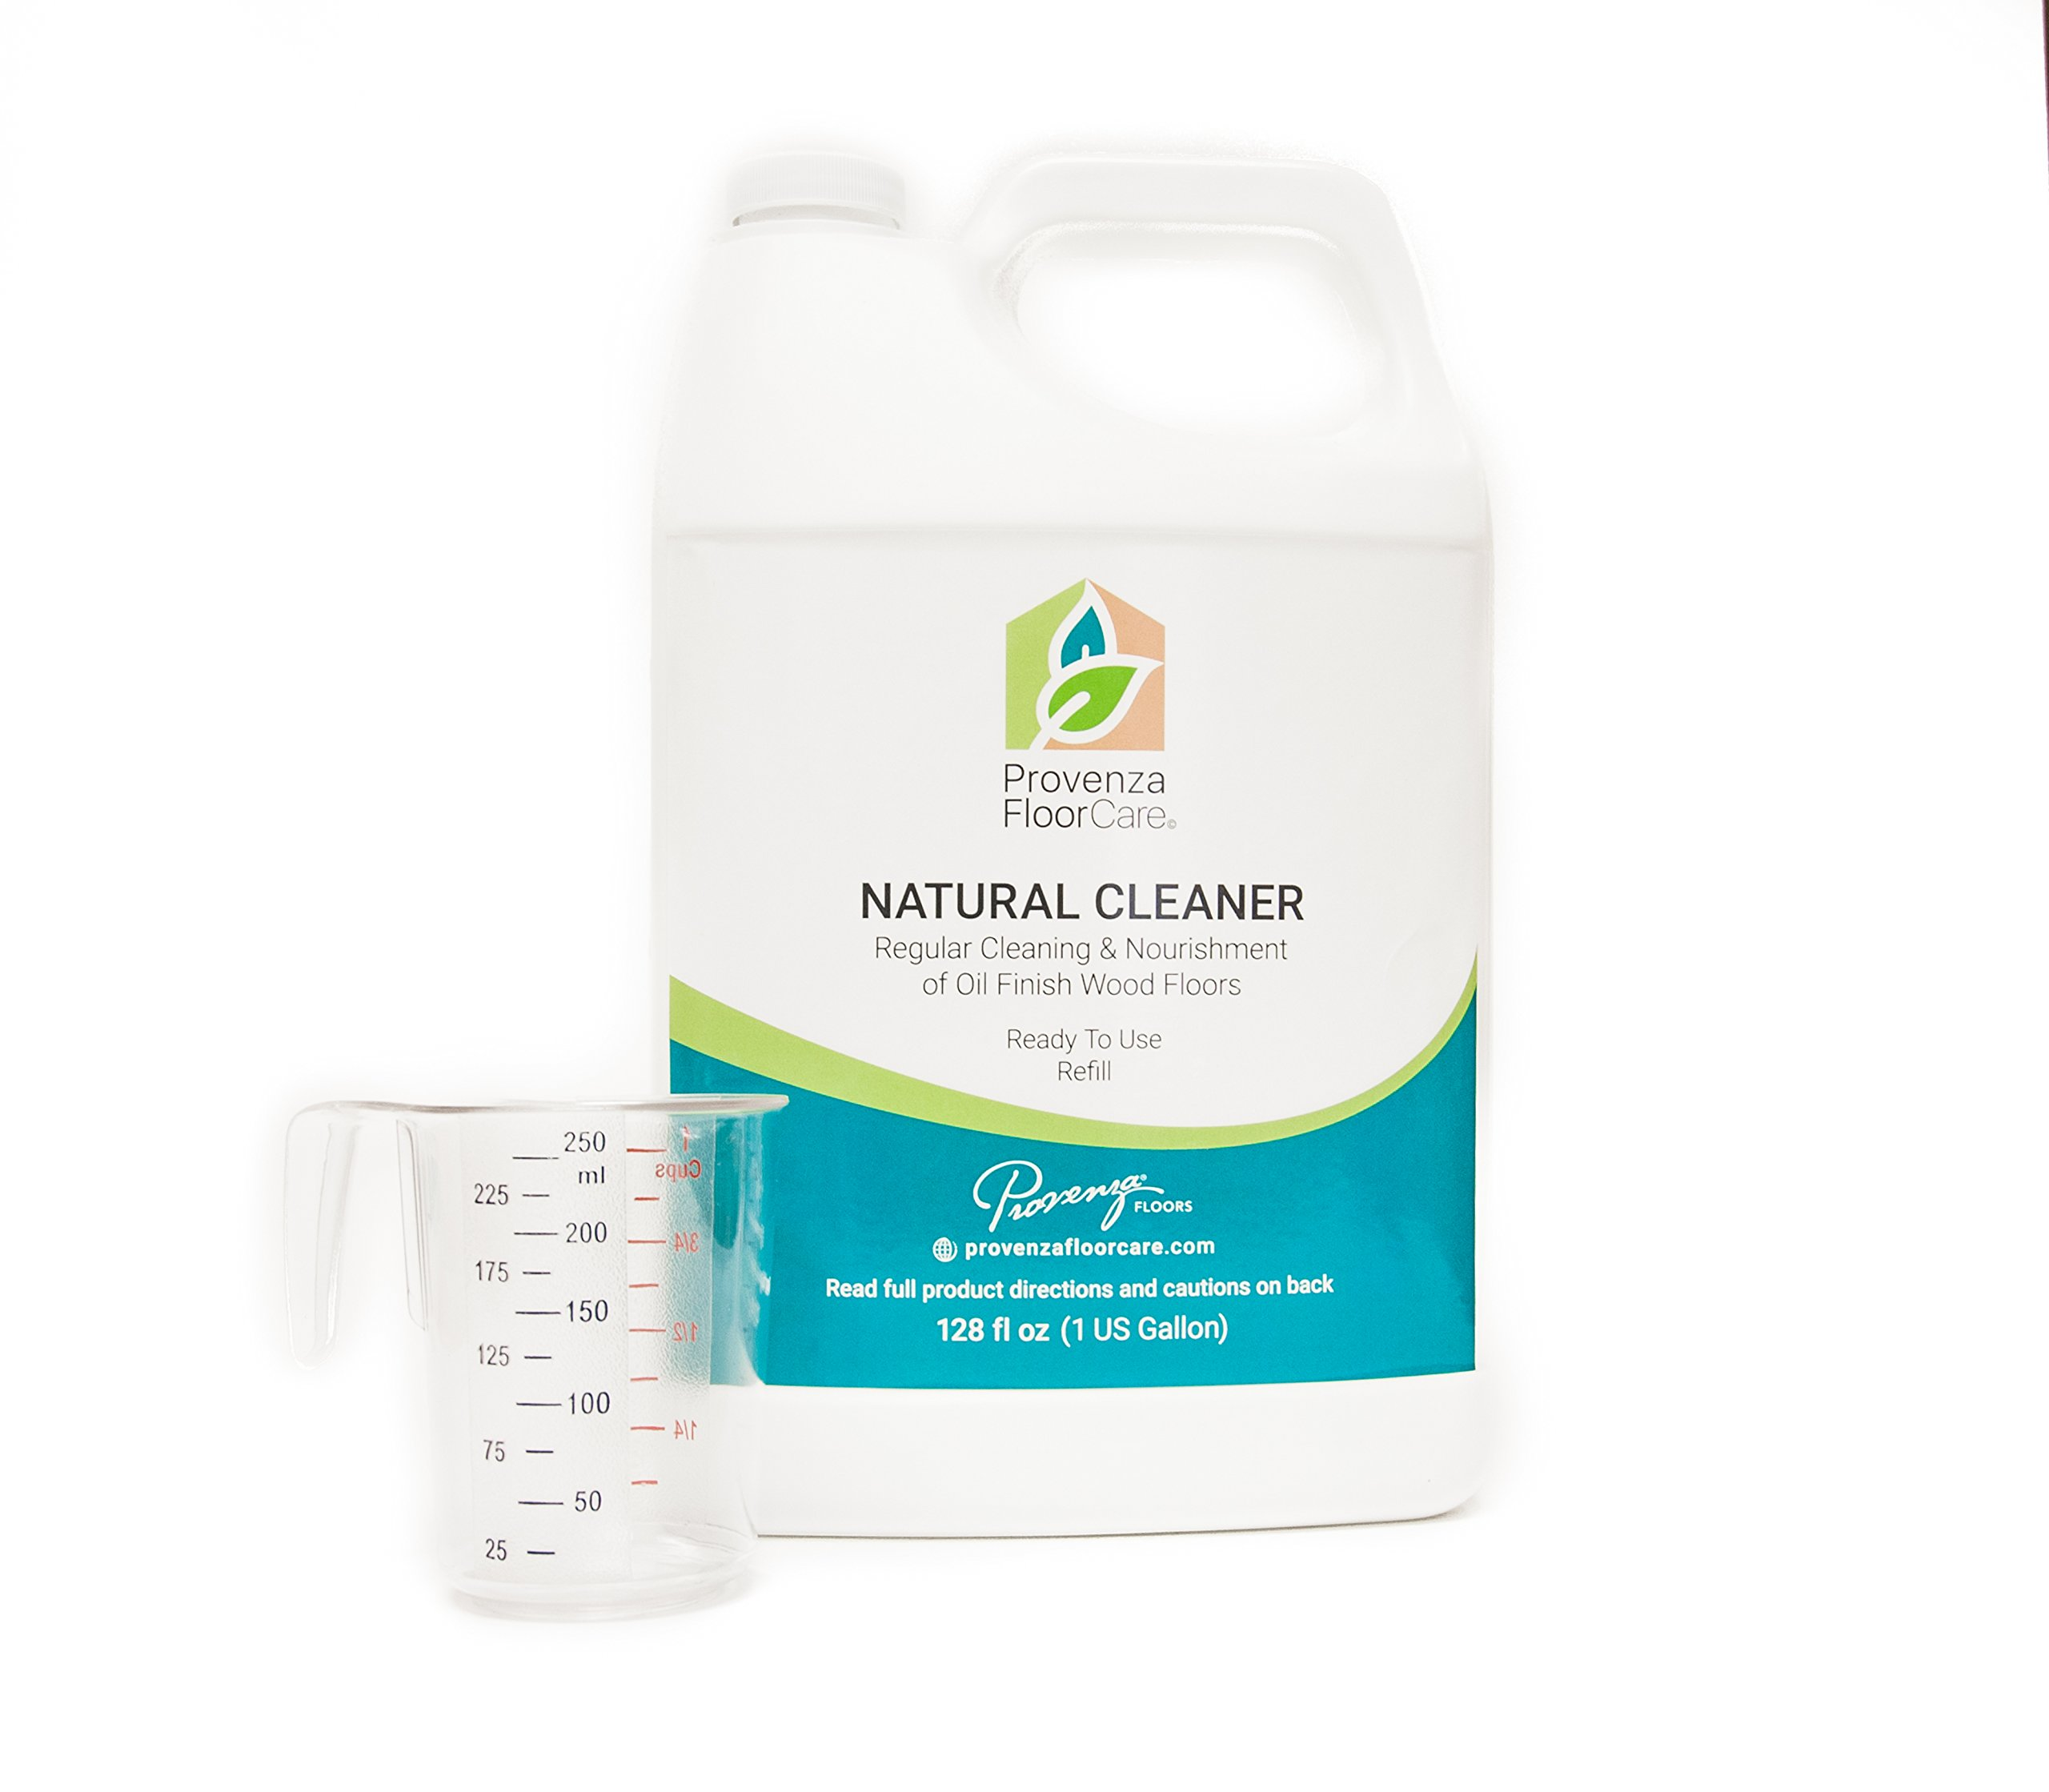 Provenza Natural Cleaner Ready to Use Refill - 1 Gallon (128 fl.oz) by Provenza Floors USA (Image #1)